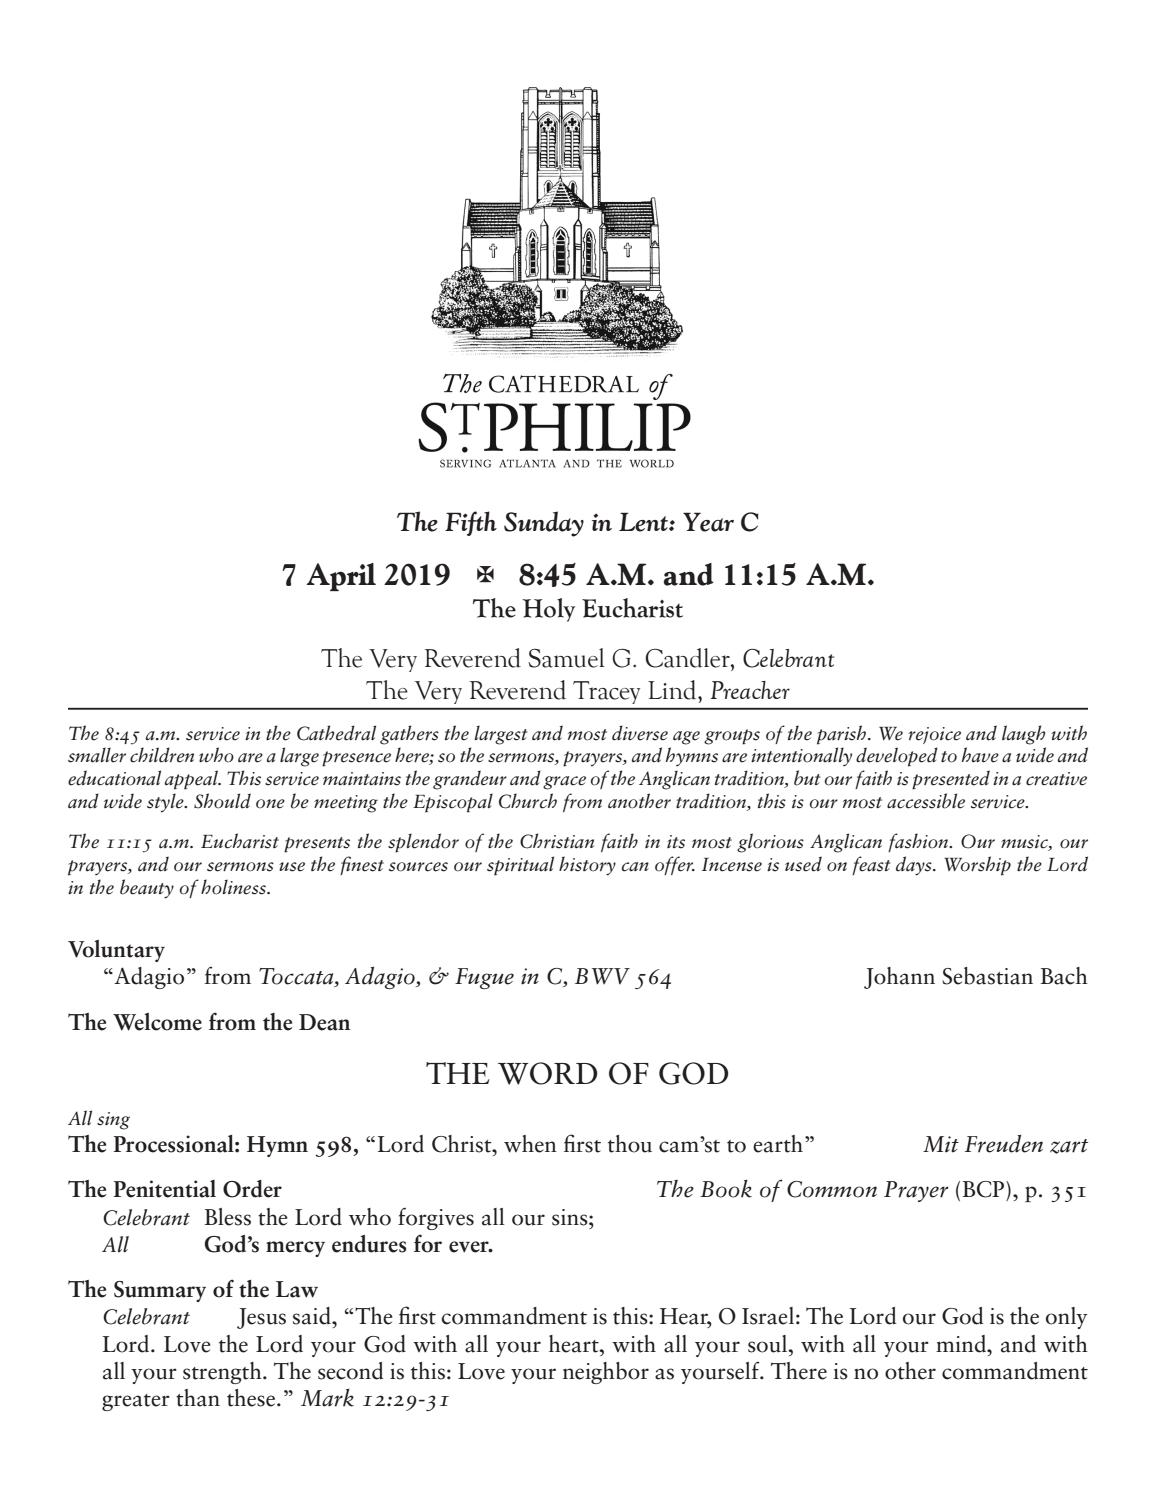 Service Leaflet – April 7, 2019 by The Cathedral of St